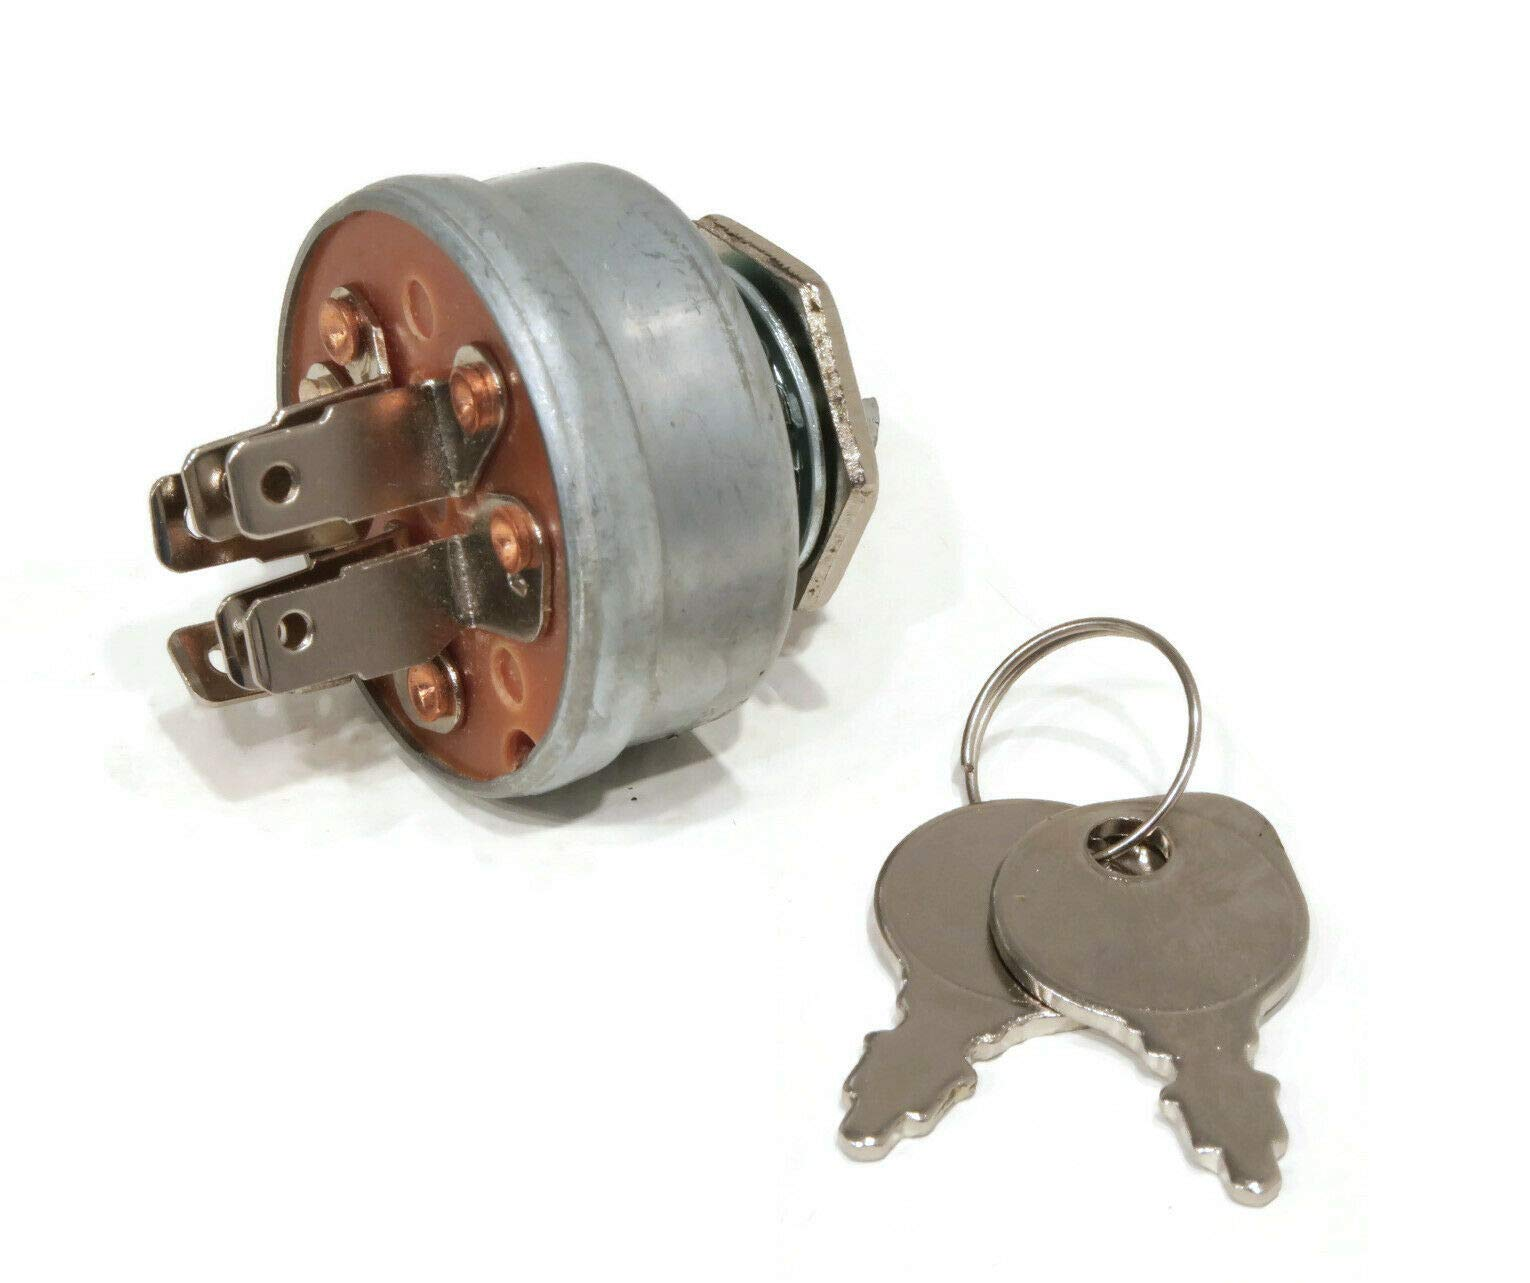 """988120 36/"""" Deck Lawn Mower Ignition Key Switch for Gravely HR1536FXP Pro Steer"""